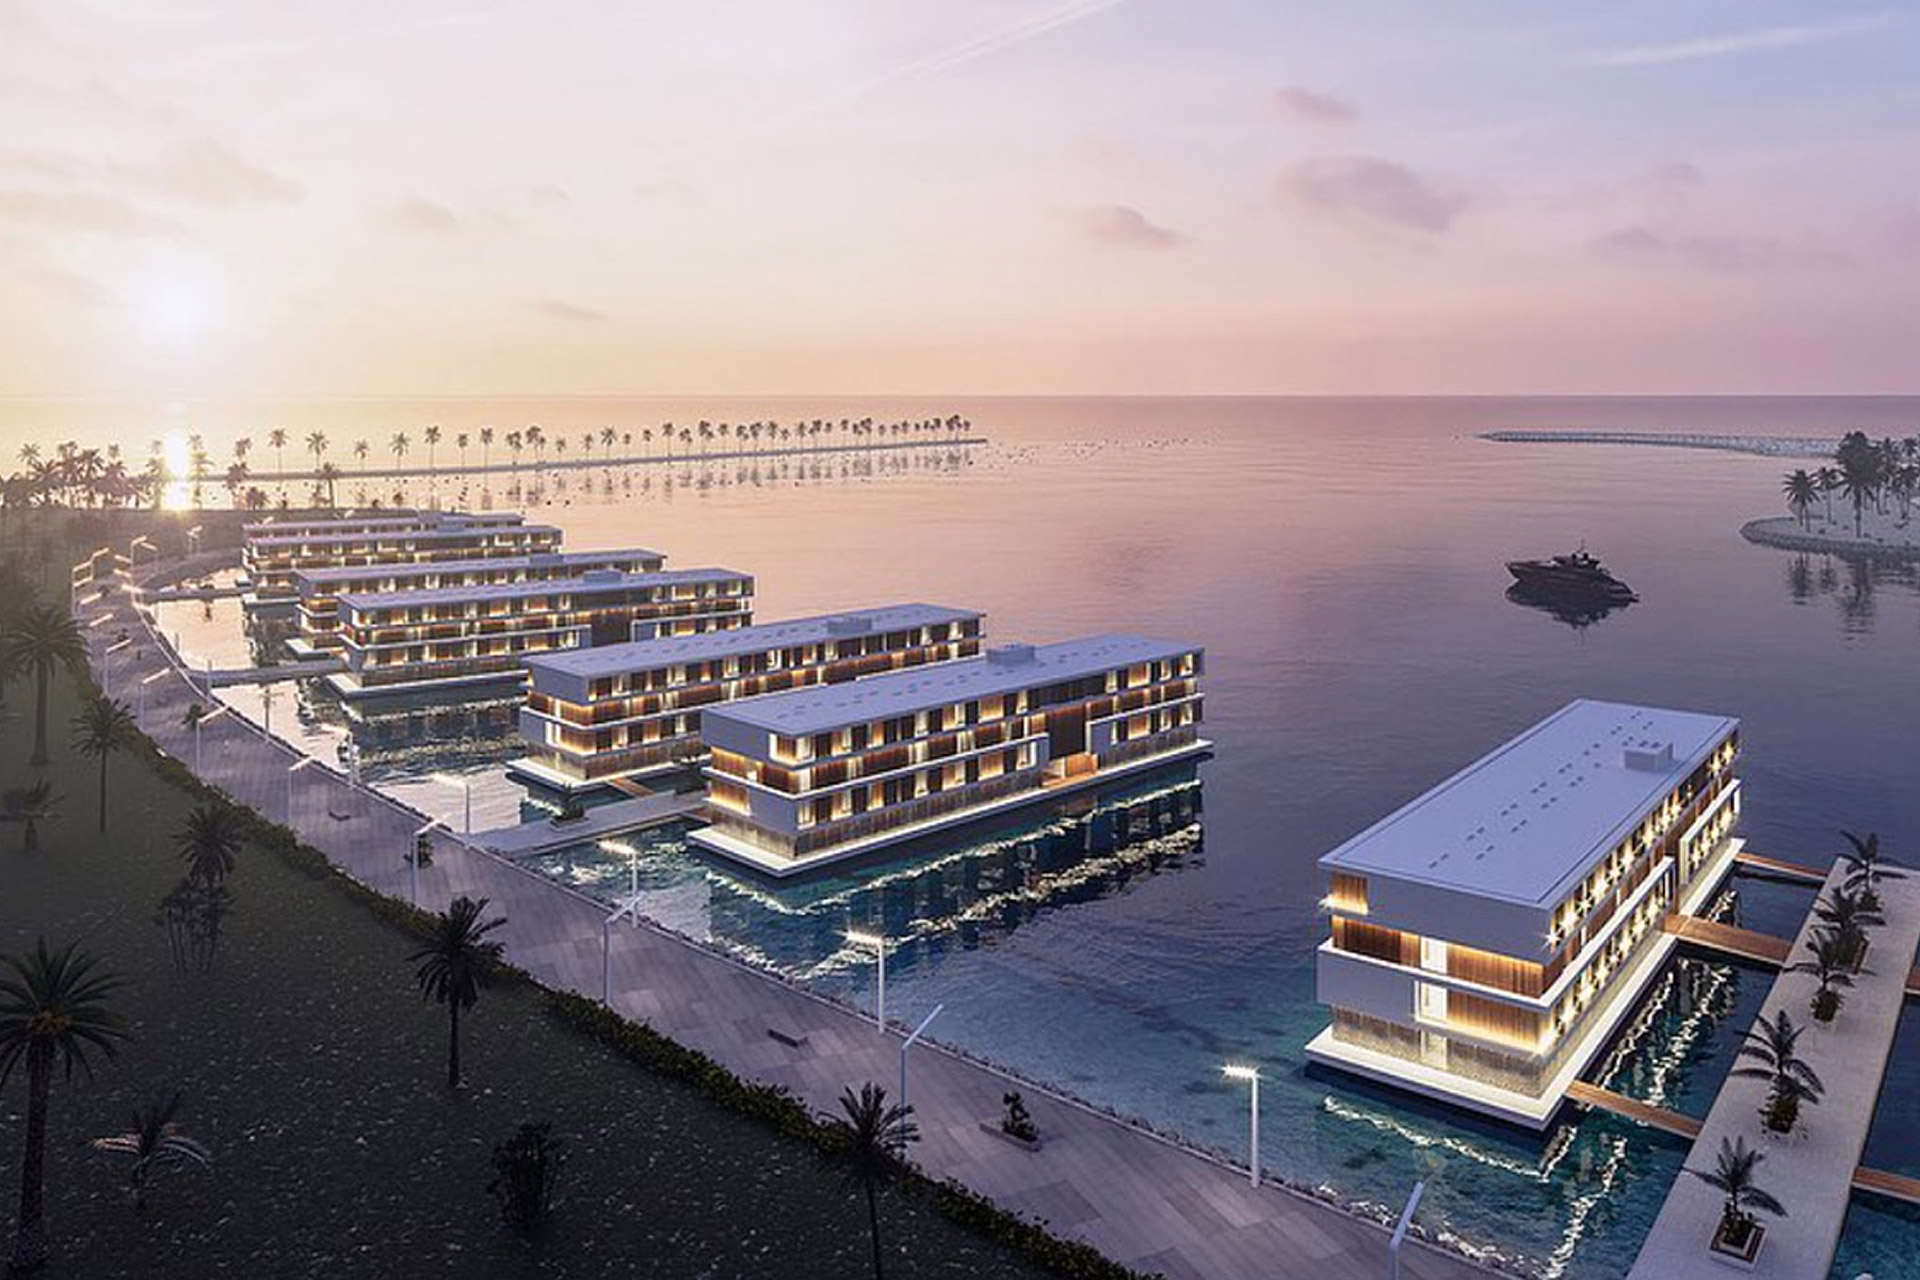 2022 FIFA World Cup Floating Hotels